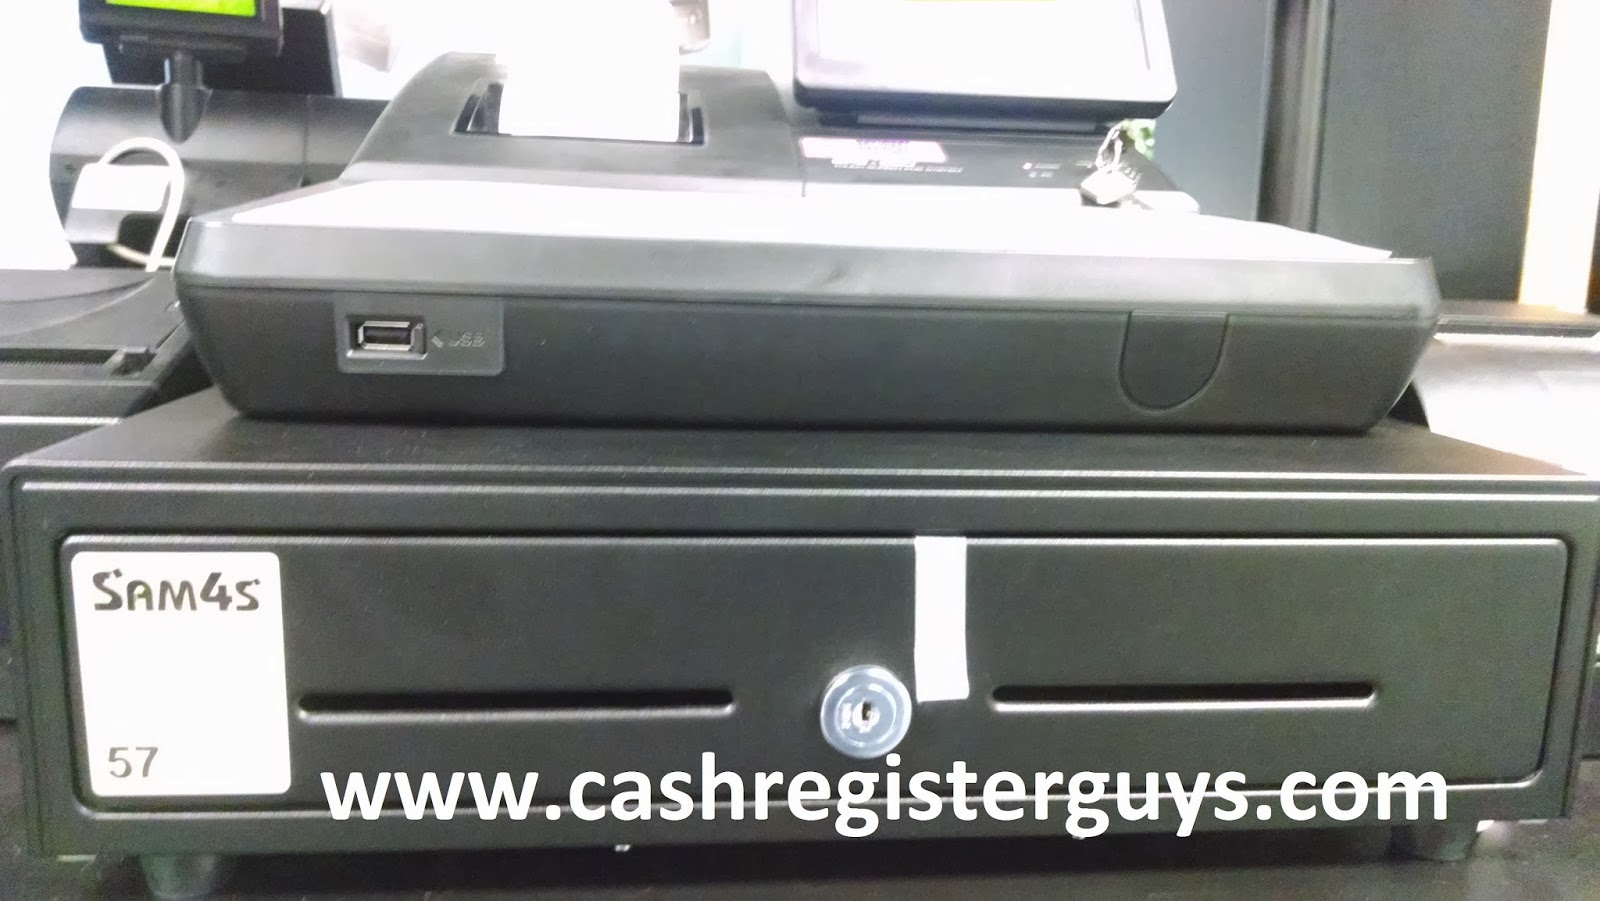 SAM4s SPS-530F cash drawer